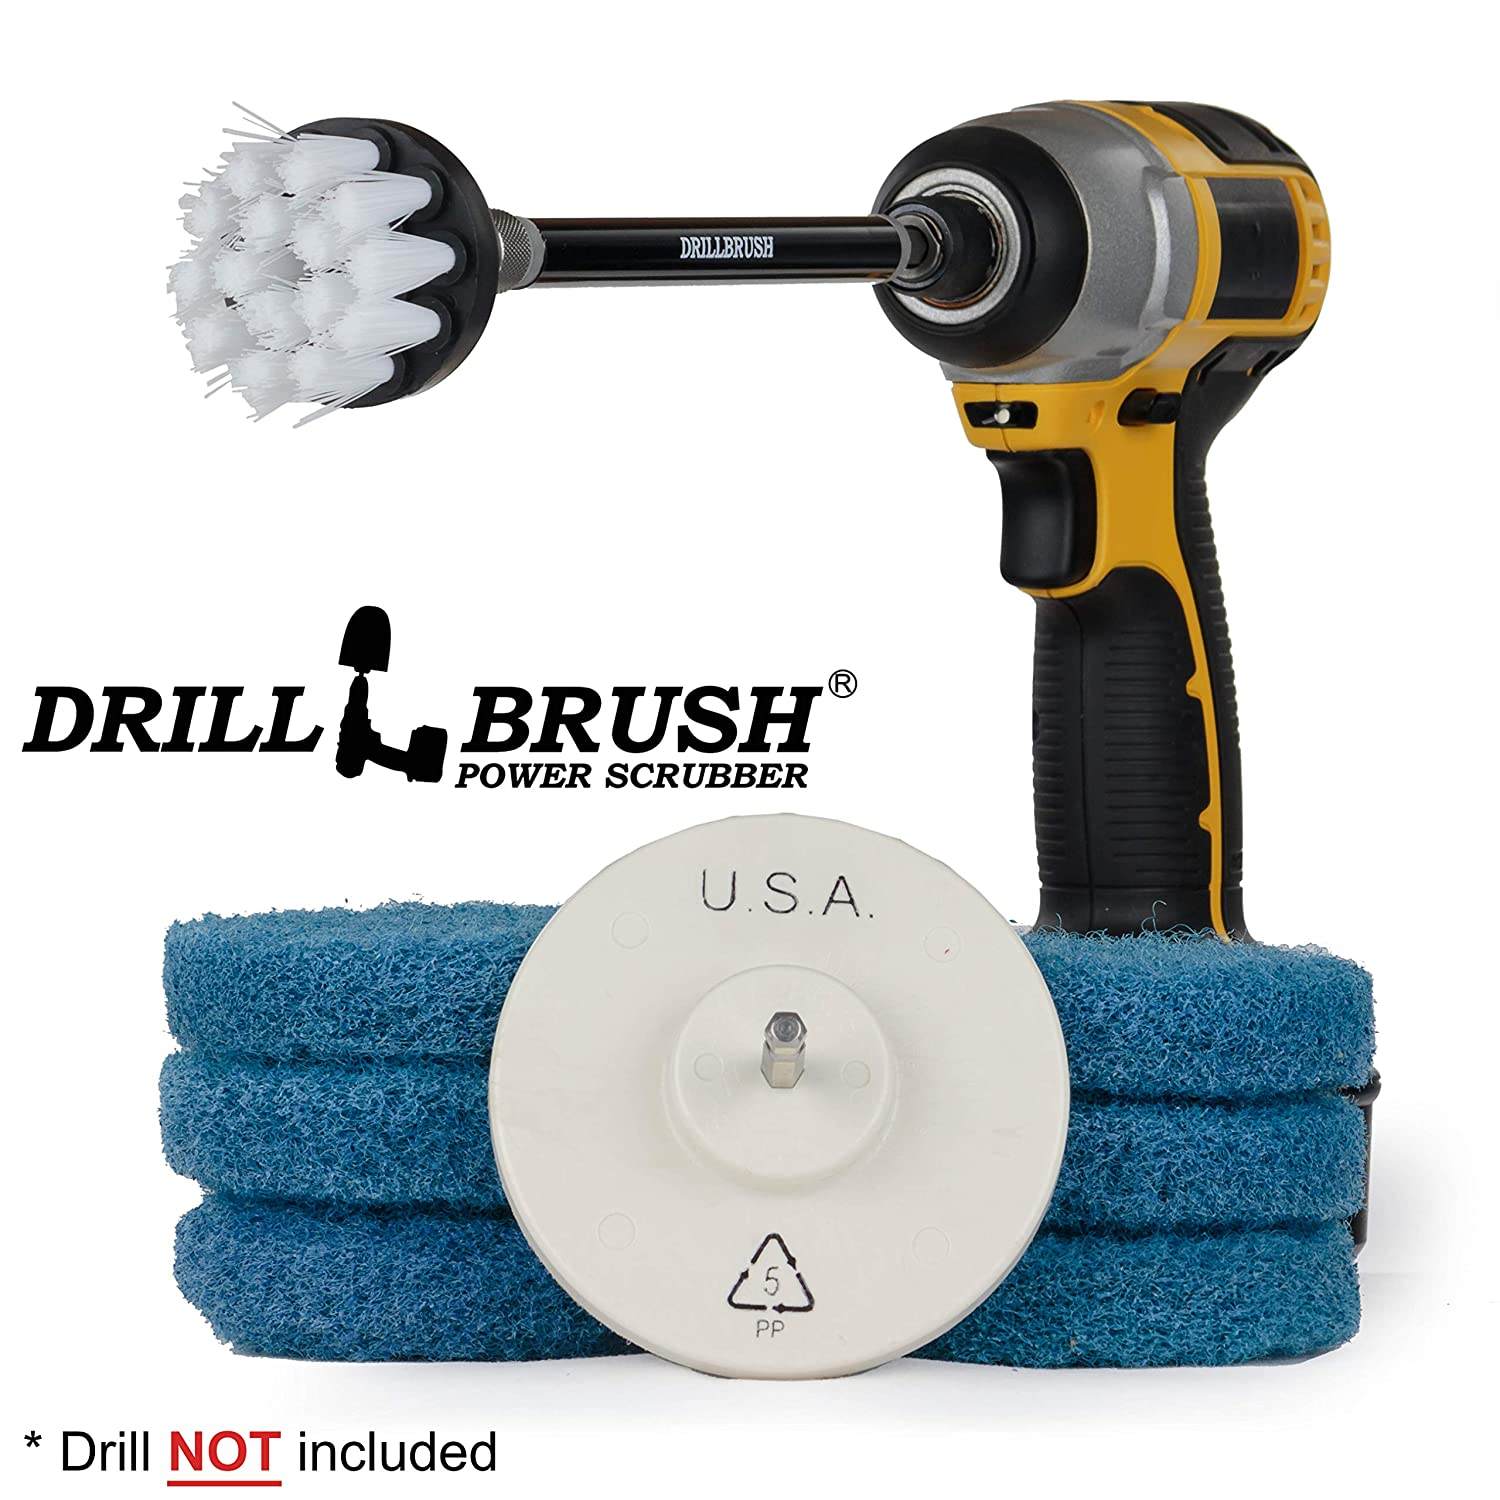 Cleaning Supplies - Kitchen Accessories - Drill Attachment - Drill Brush Power Scrubber Pads - Scrub Brush - Oven Cleaner - Stove Top Cleaner - Pots And Pans - Kitchen Sink - Hard Water Stain Remover